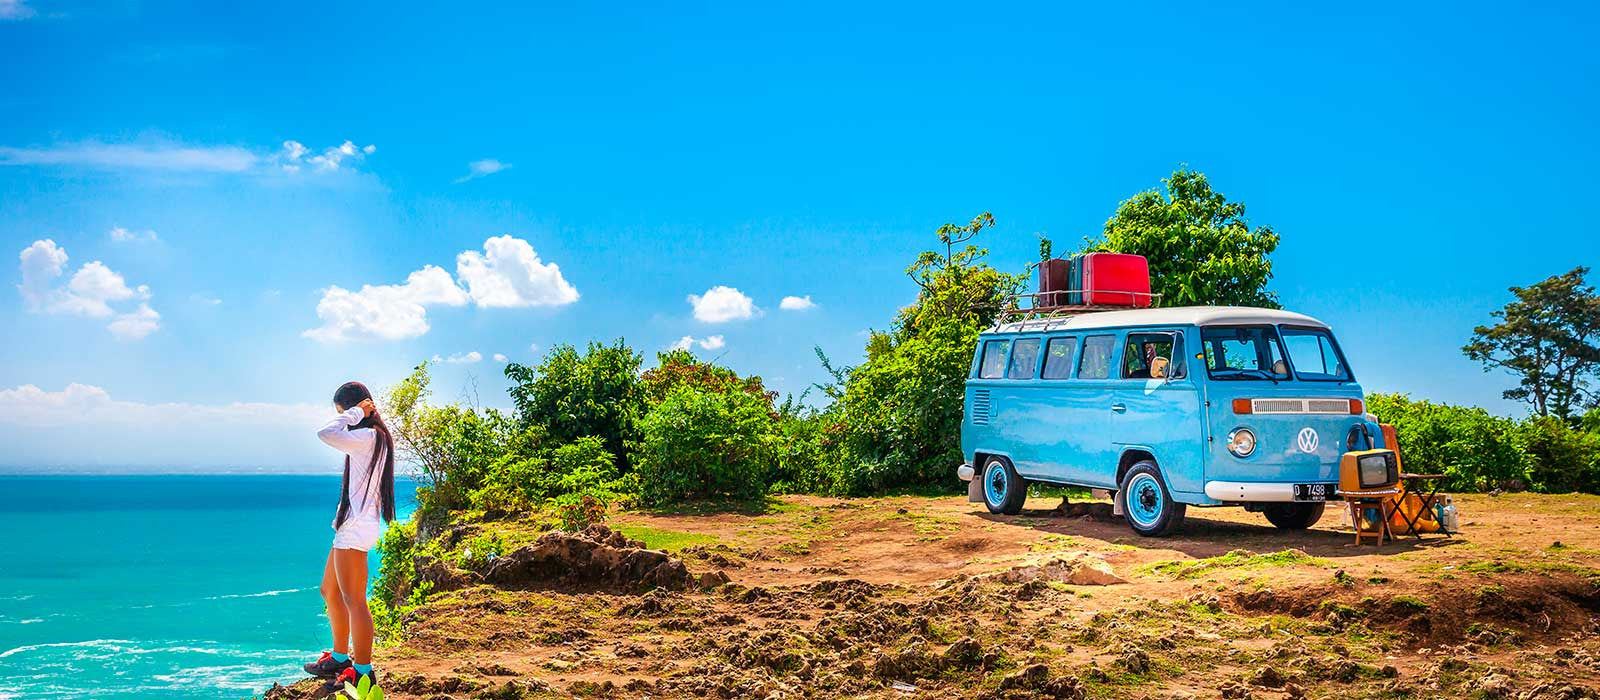 Girl on sea cliff edge next to bright blue VW camper